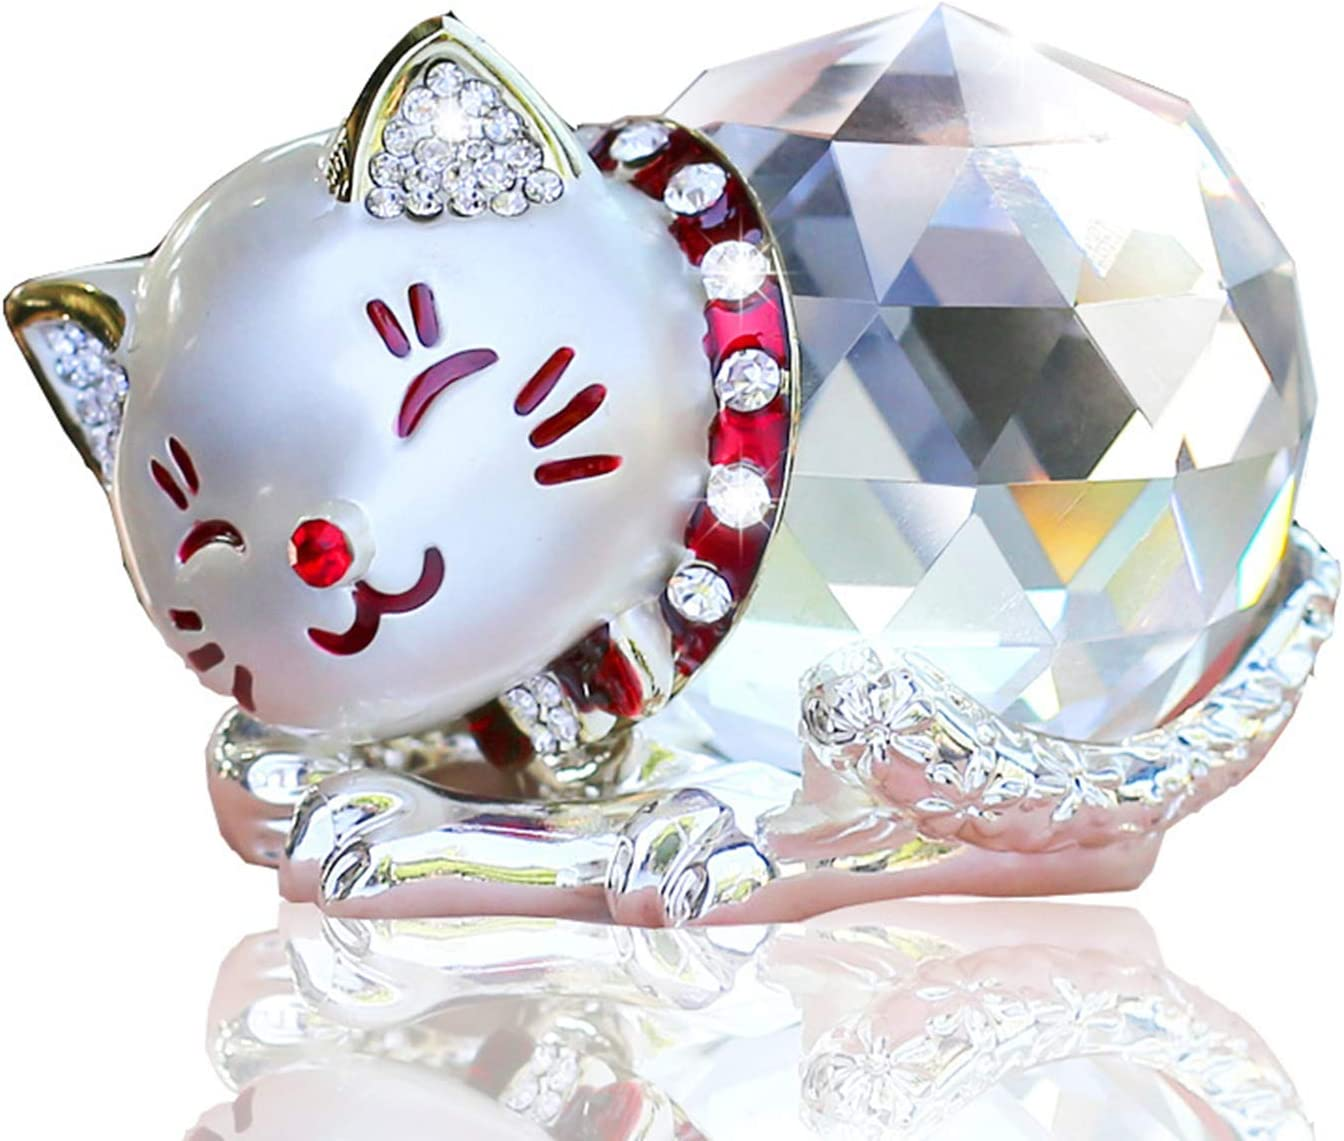 Hoobar Alloy Crystal Lucky Cat Figurine for Wedding,Birthday,Car and Home Decoration Furnishing Article (Silver)